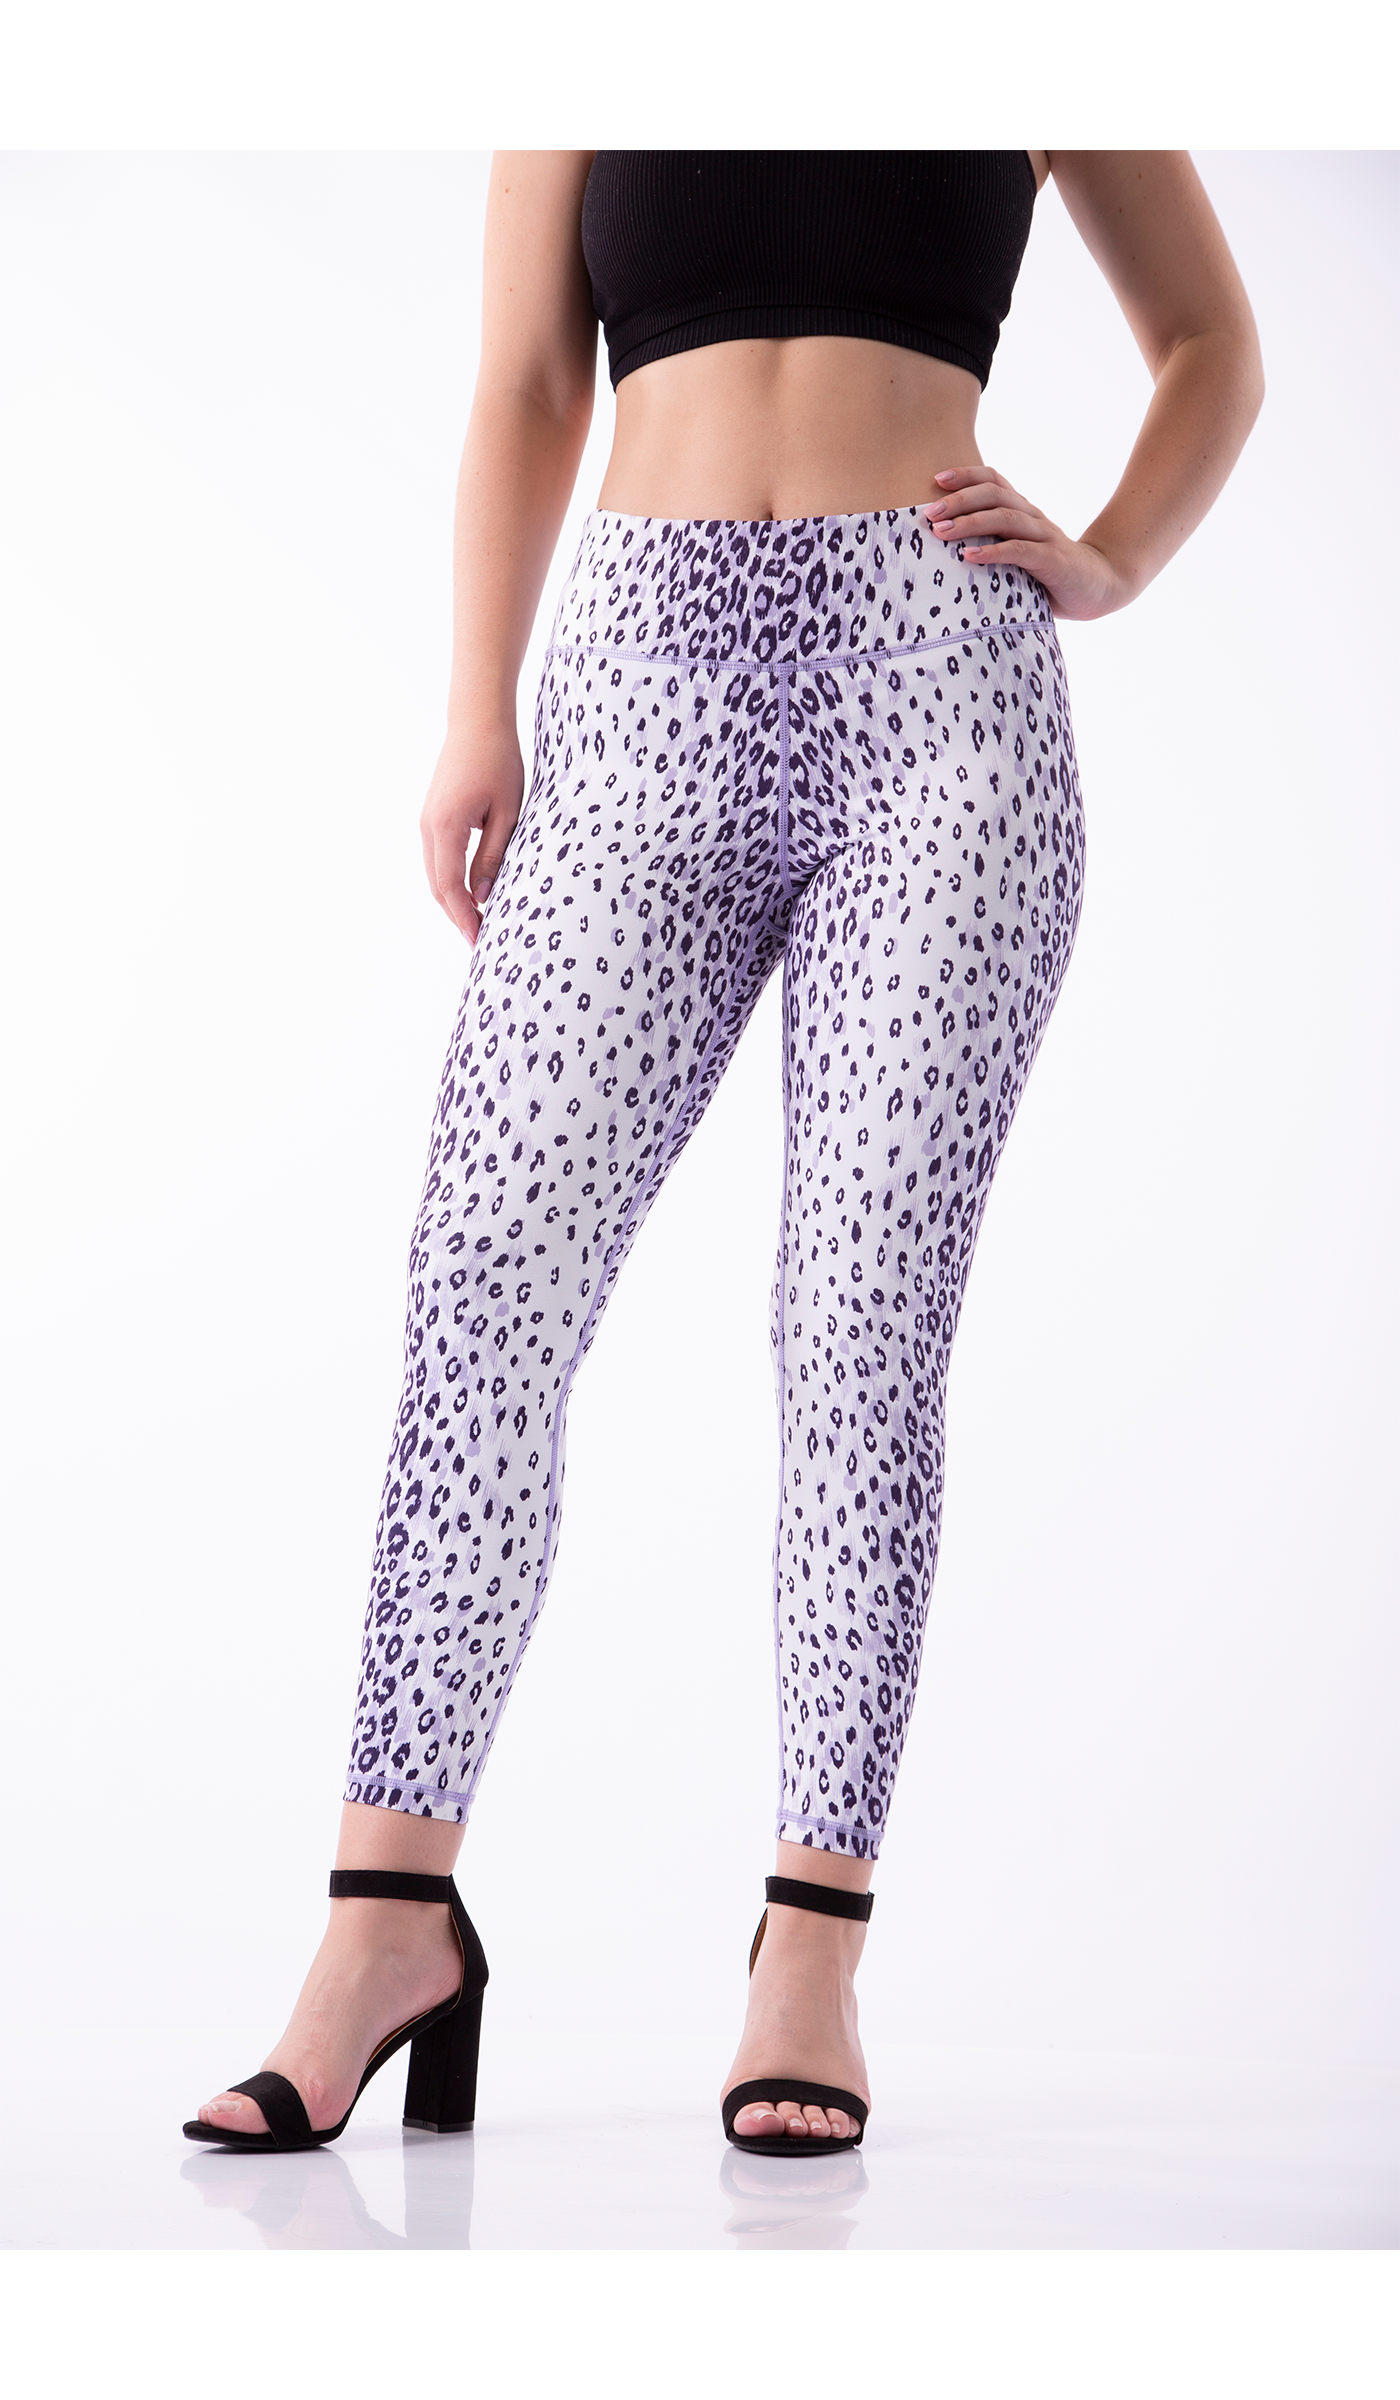 Image of GNT Leggings - white leopard